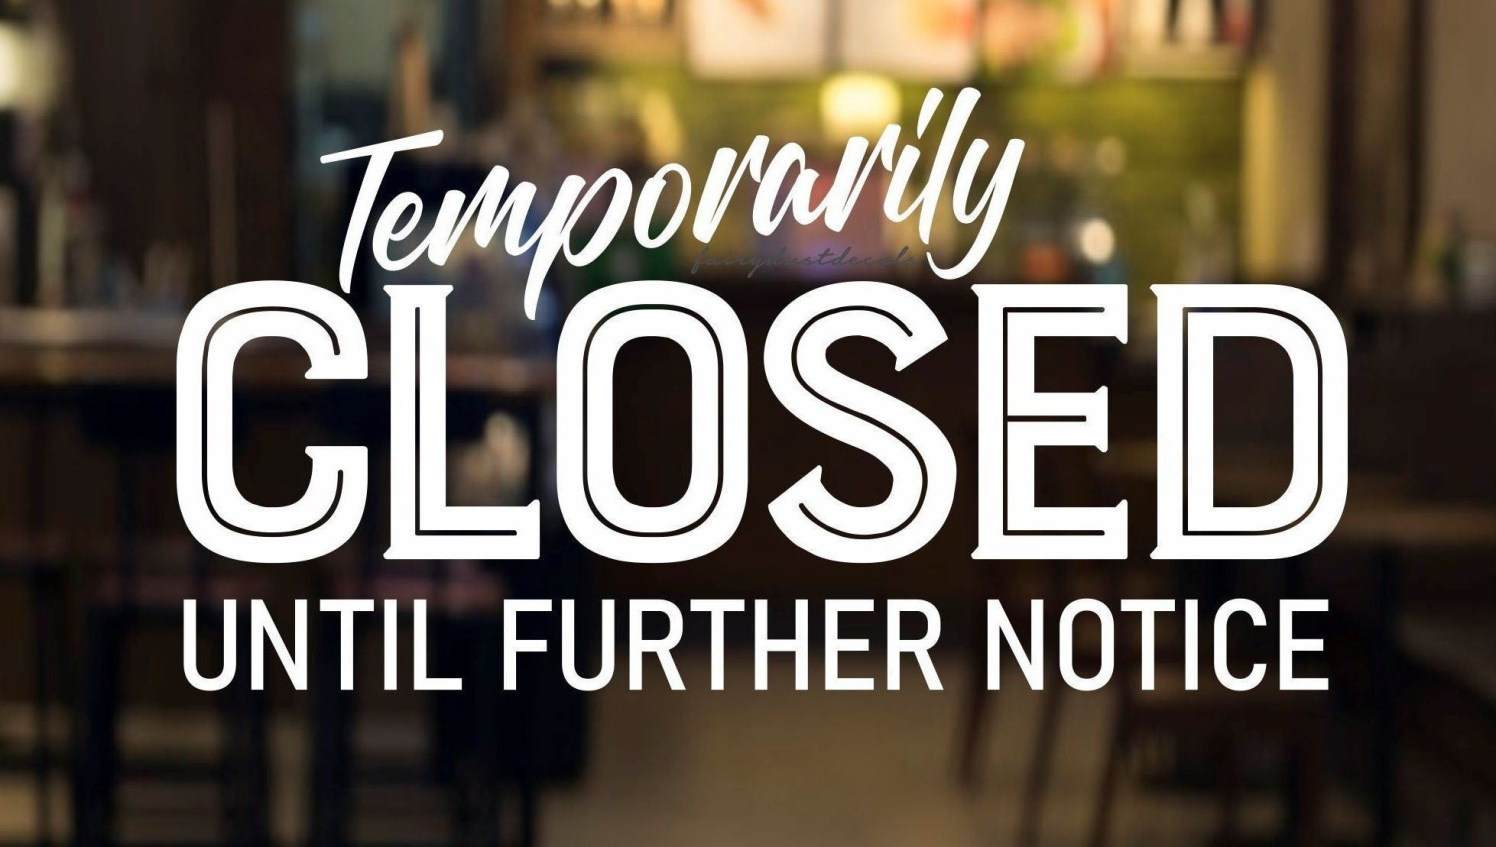 Closed until further notice - Copy